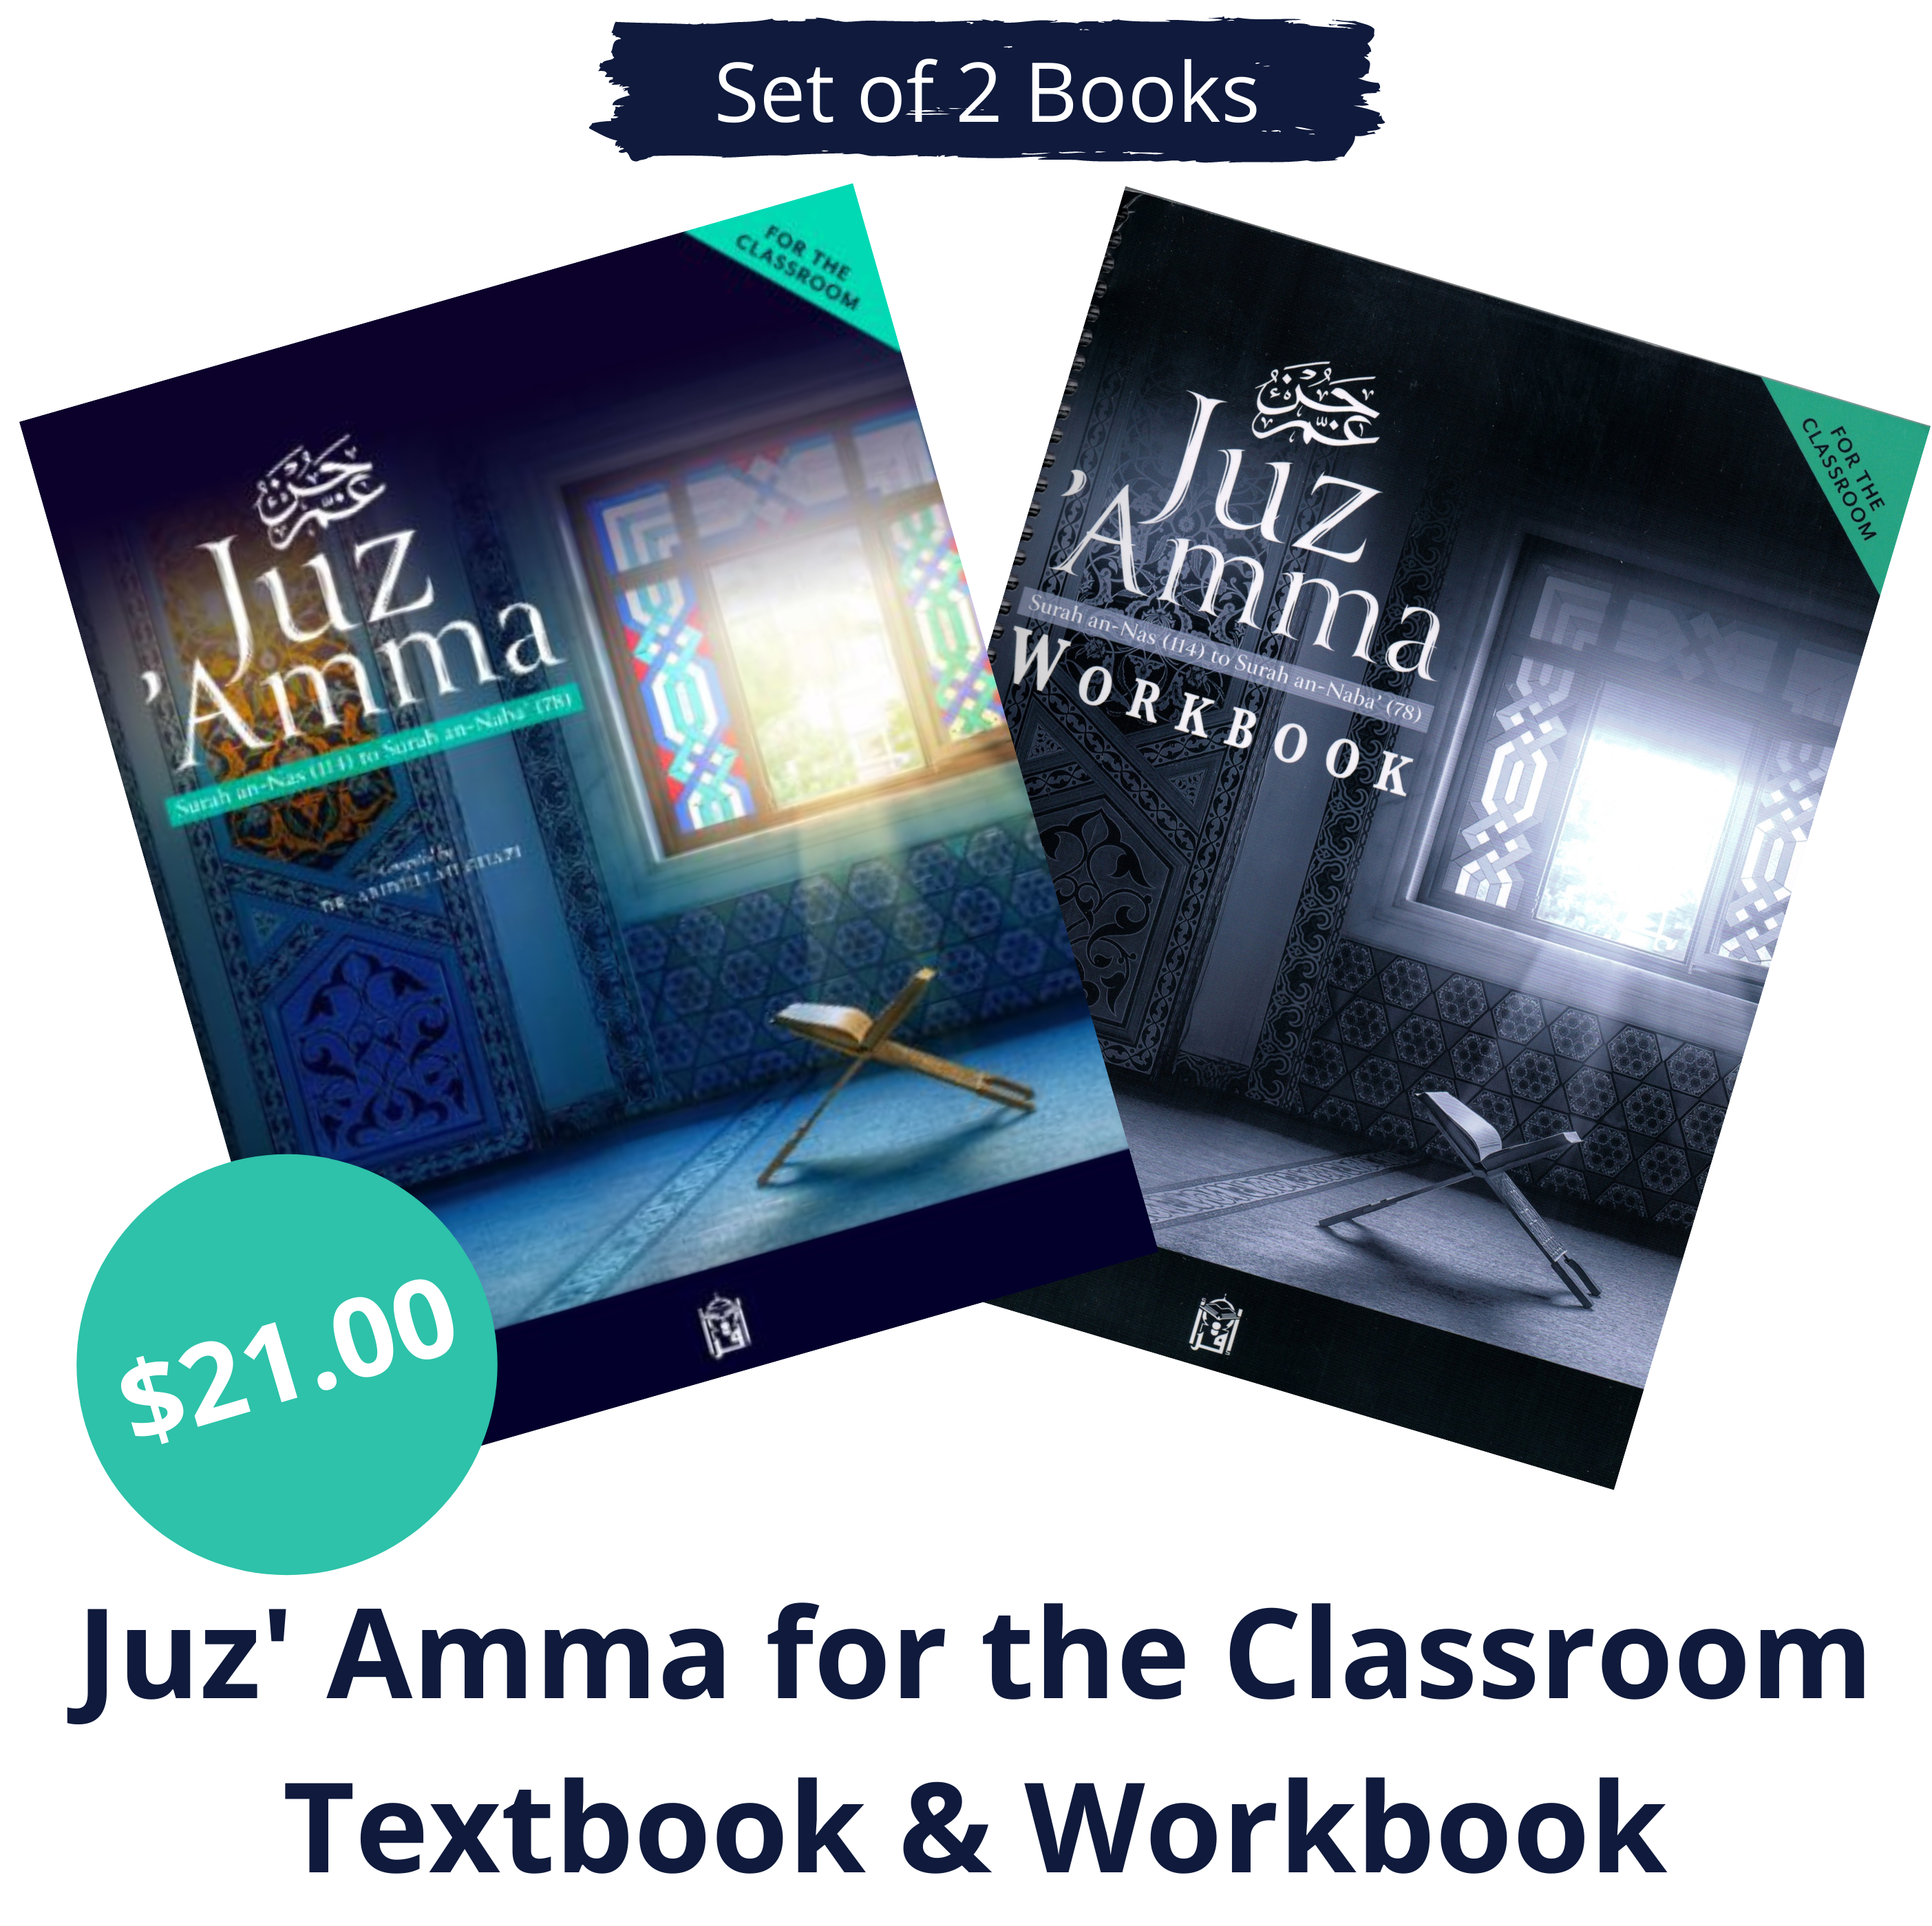 Juz' Amma for the Classroom Textbook & Workbook